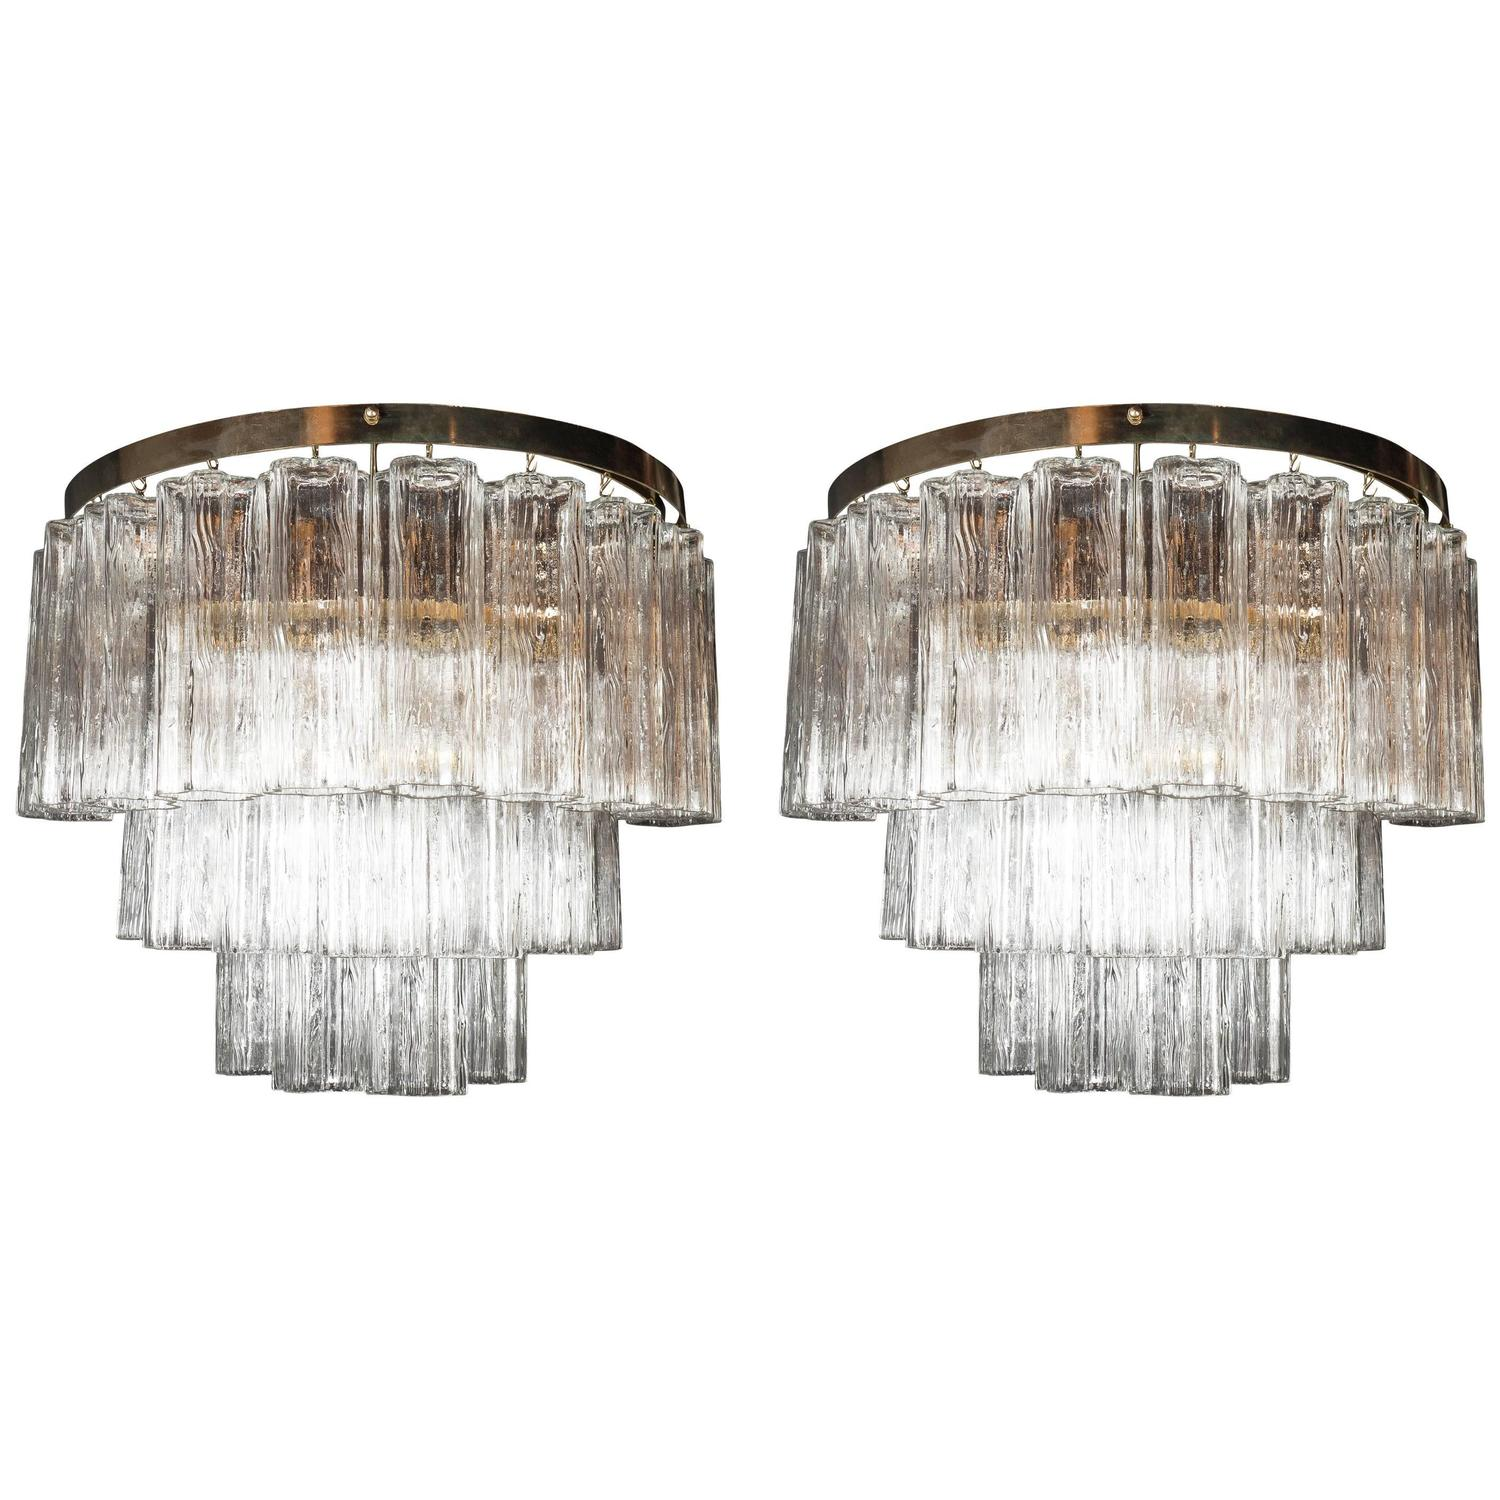 Pair of Large-Scale Mid-Century Modern Murano Tronchi and Brass Sconces at 1stdibs